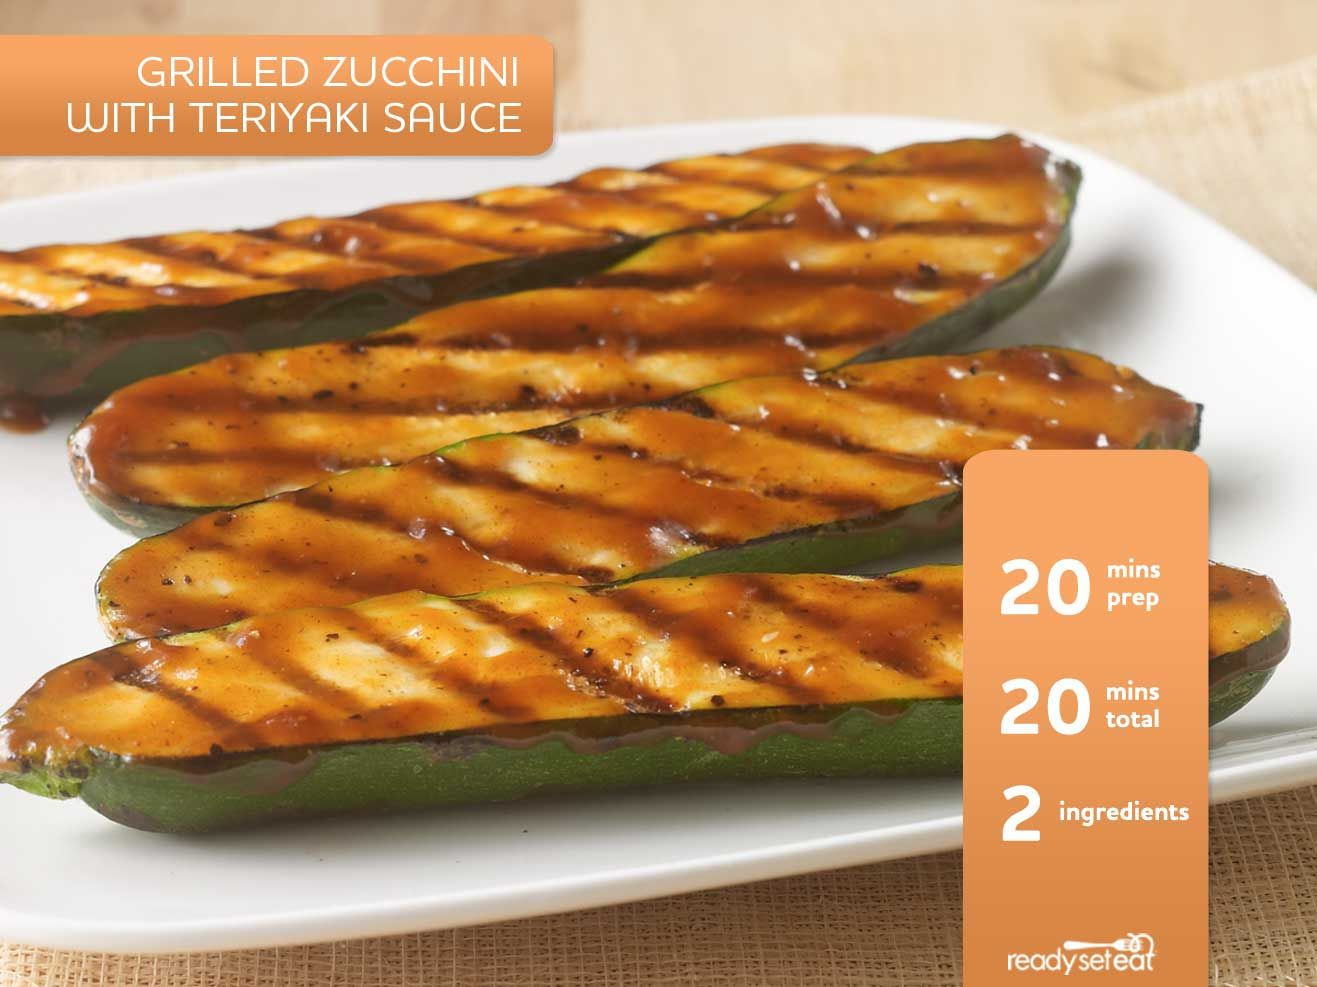 Grilled Zucchini with Teriyaki Sauce And other zucchini dishes.